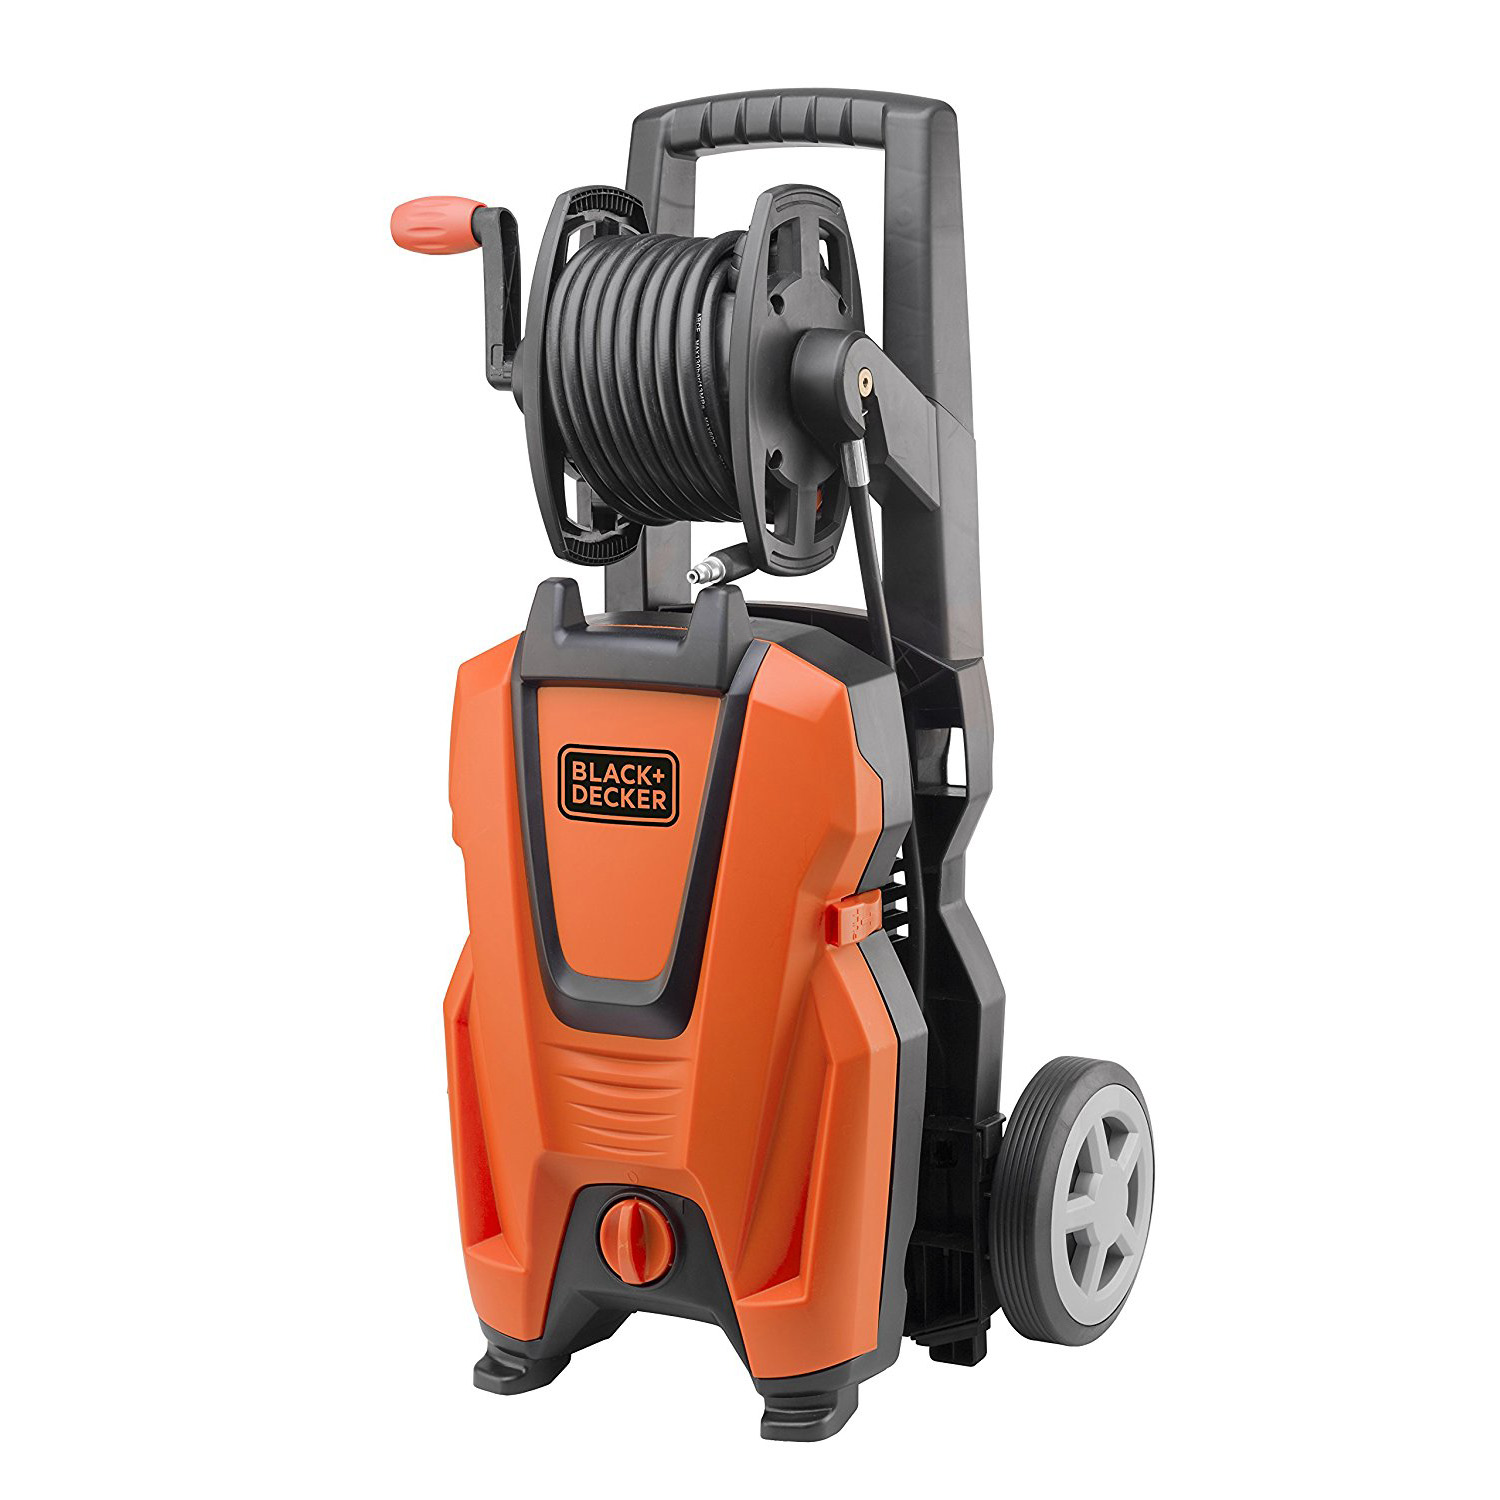 Black and Decker PW1800WSR